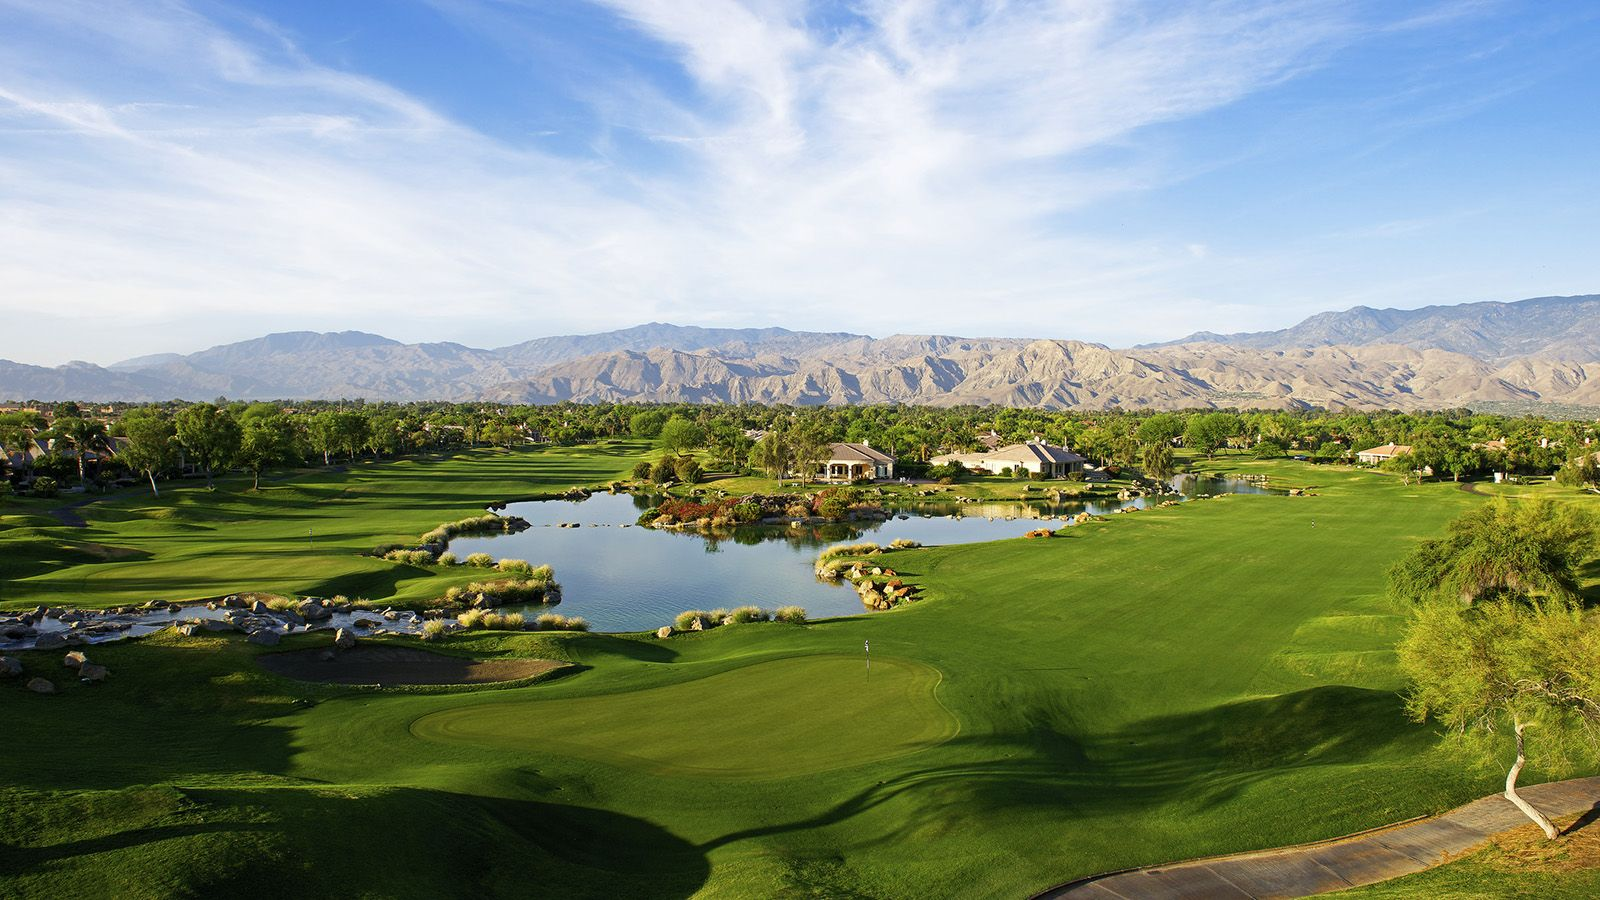 Palm Springs Golf Courses - The Gary Player Golf Course